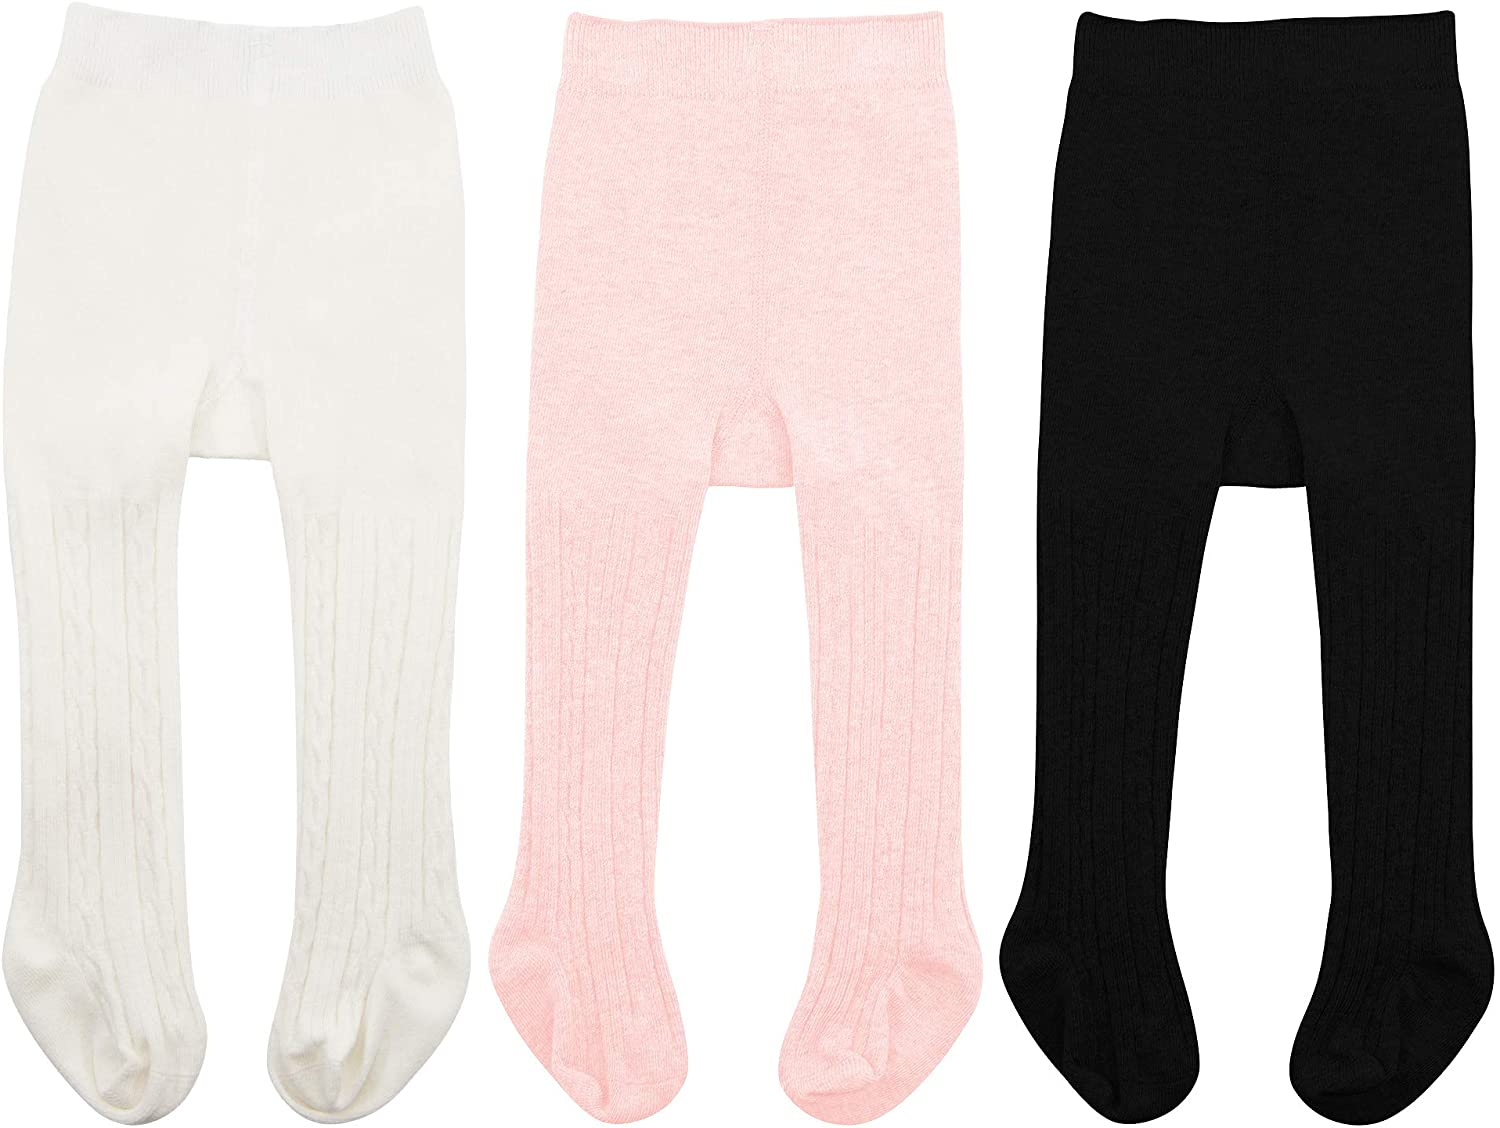 Zando Infant Soft Tights Toddler Seamless Leggings Tights for Baby Girls Winter Knit Warm Newborn Pants Stockings